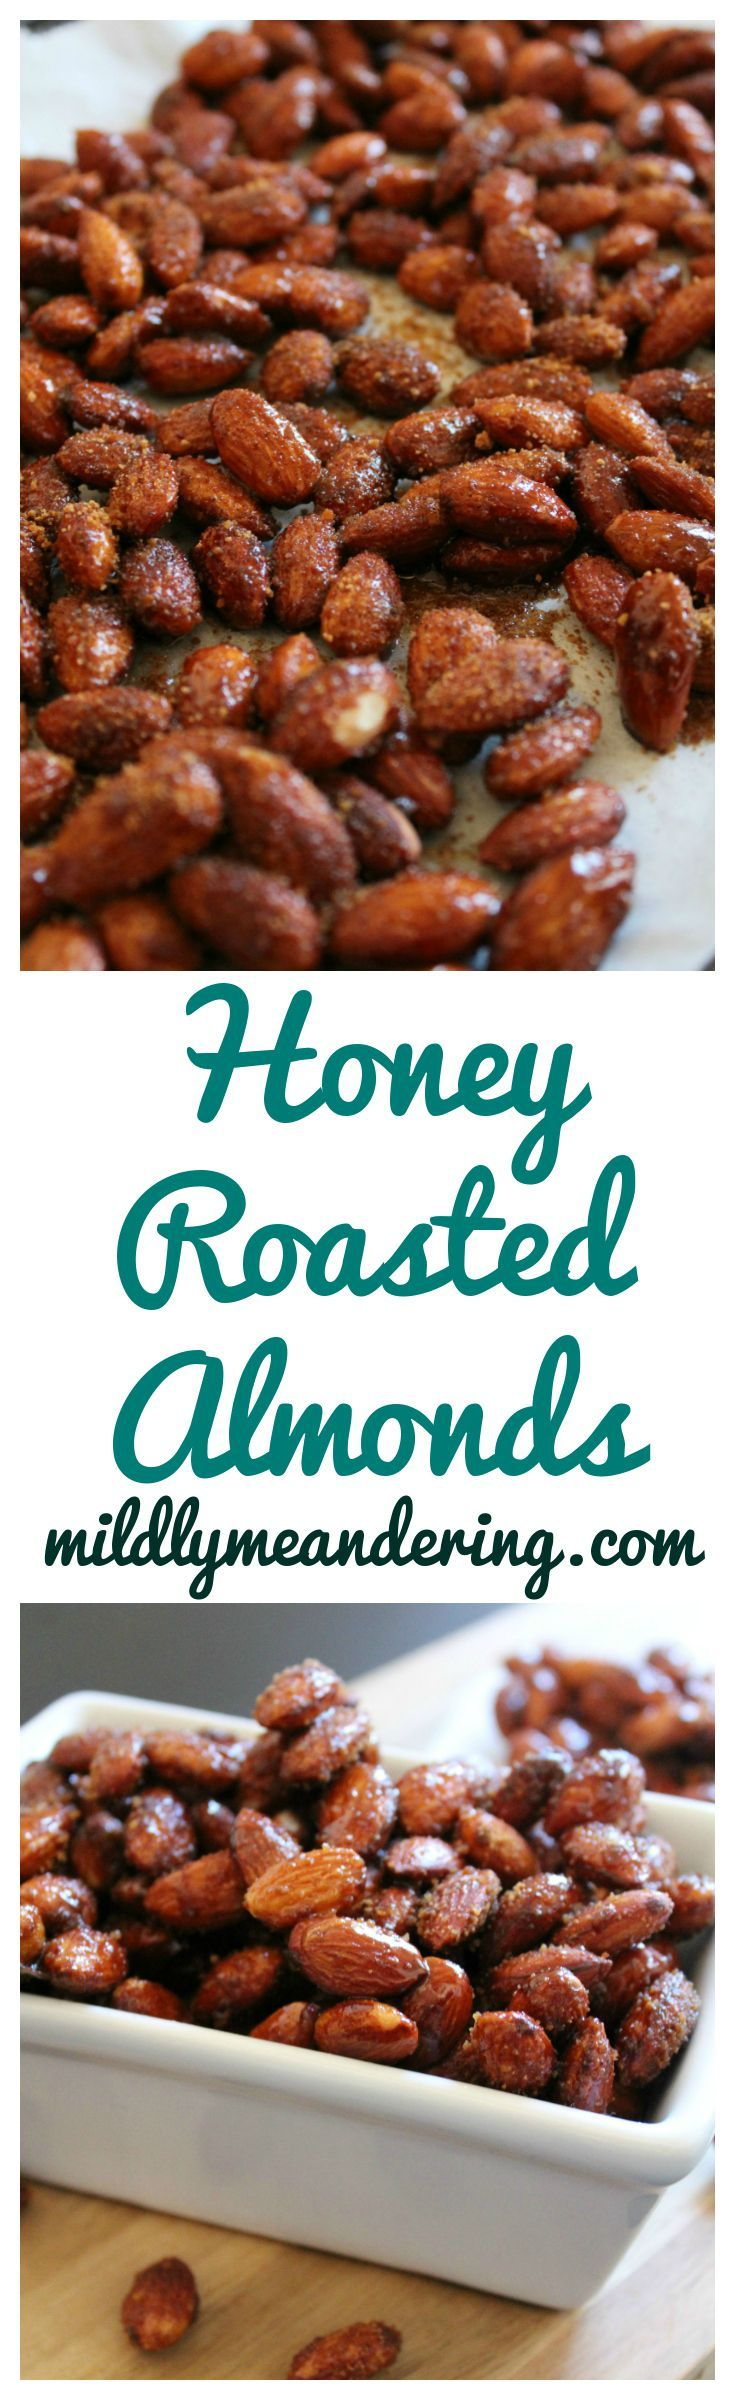 Honey Roasted Almonds – Almonds roasted and then covered in a delicious honey glaze and sugar.  They are so addicting!